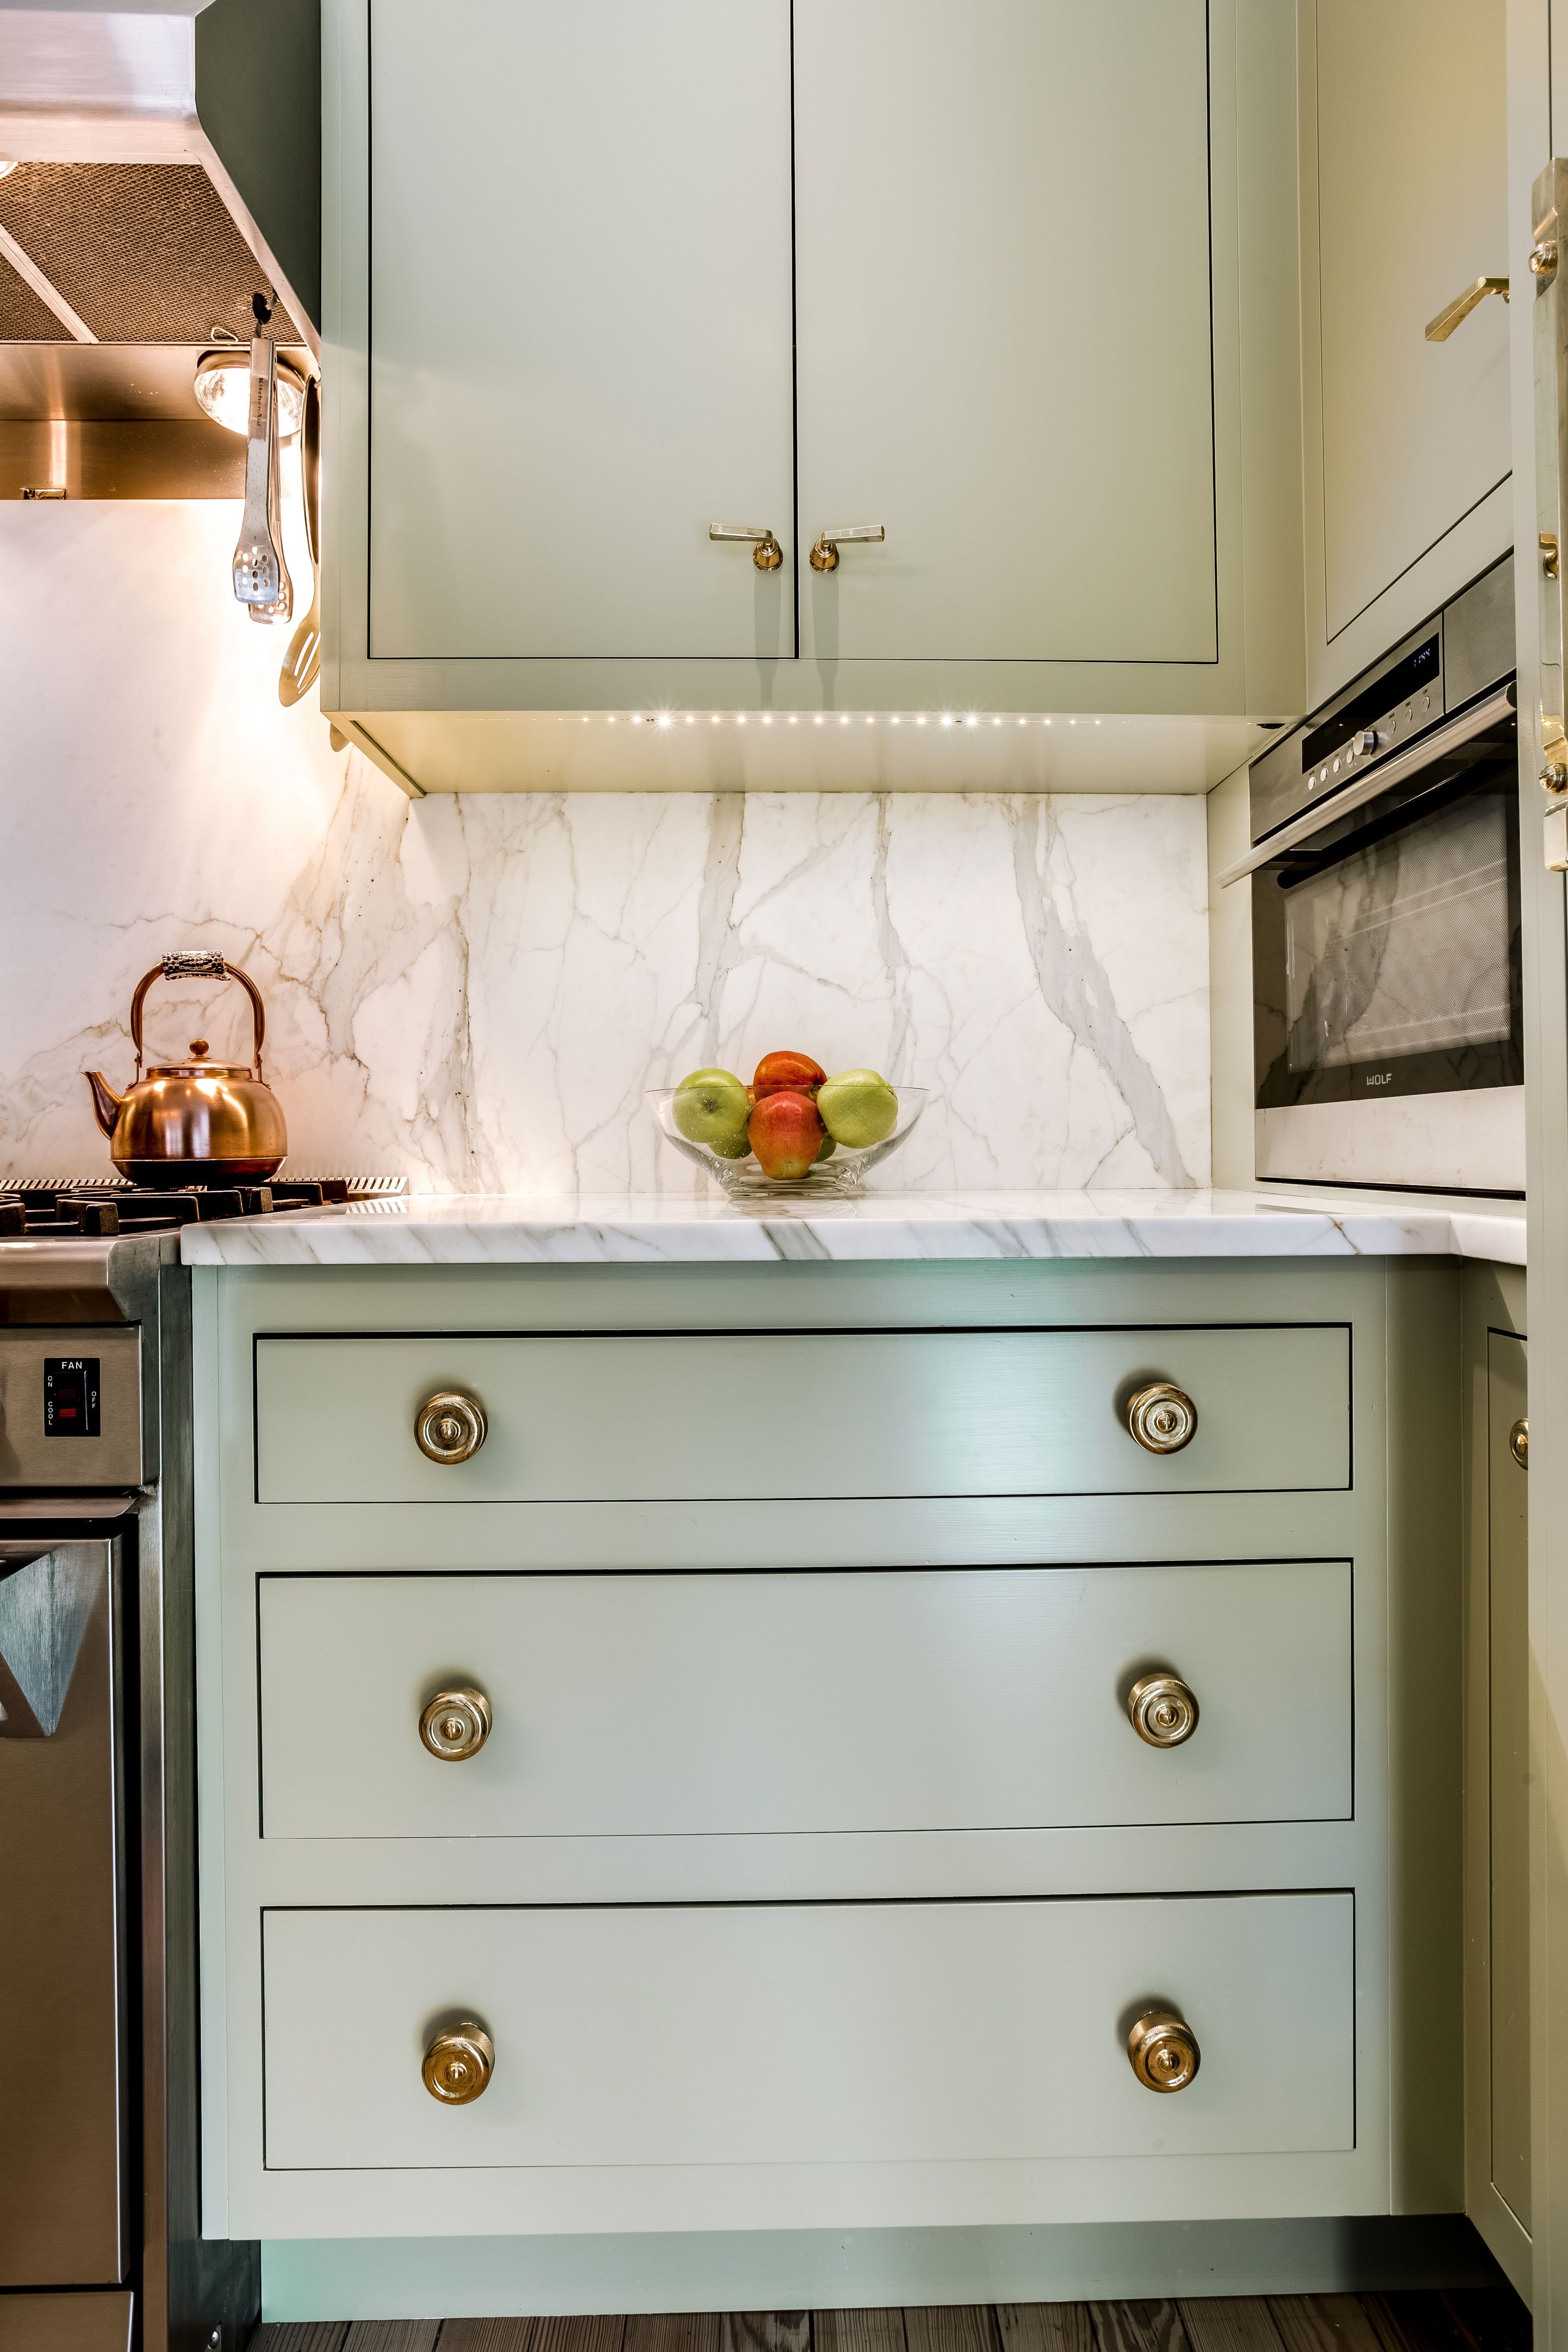 Olive green kitchen cabinets and drawers christian zapatka